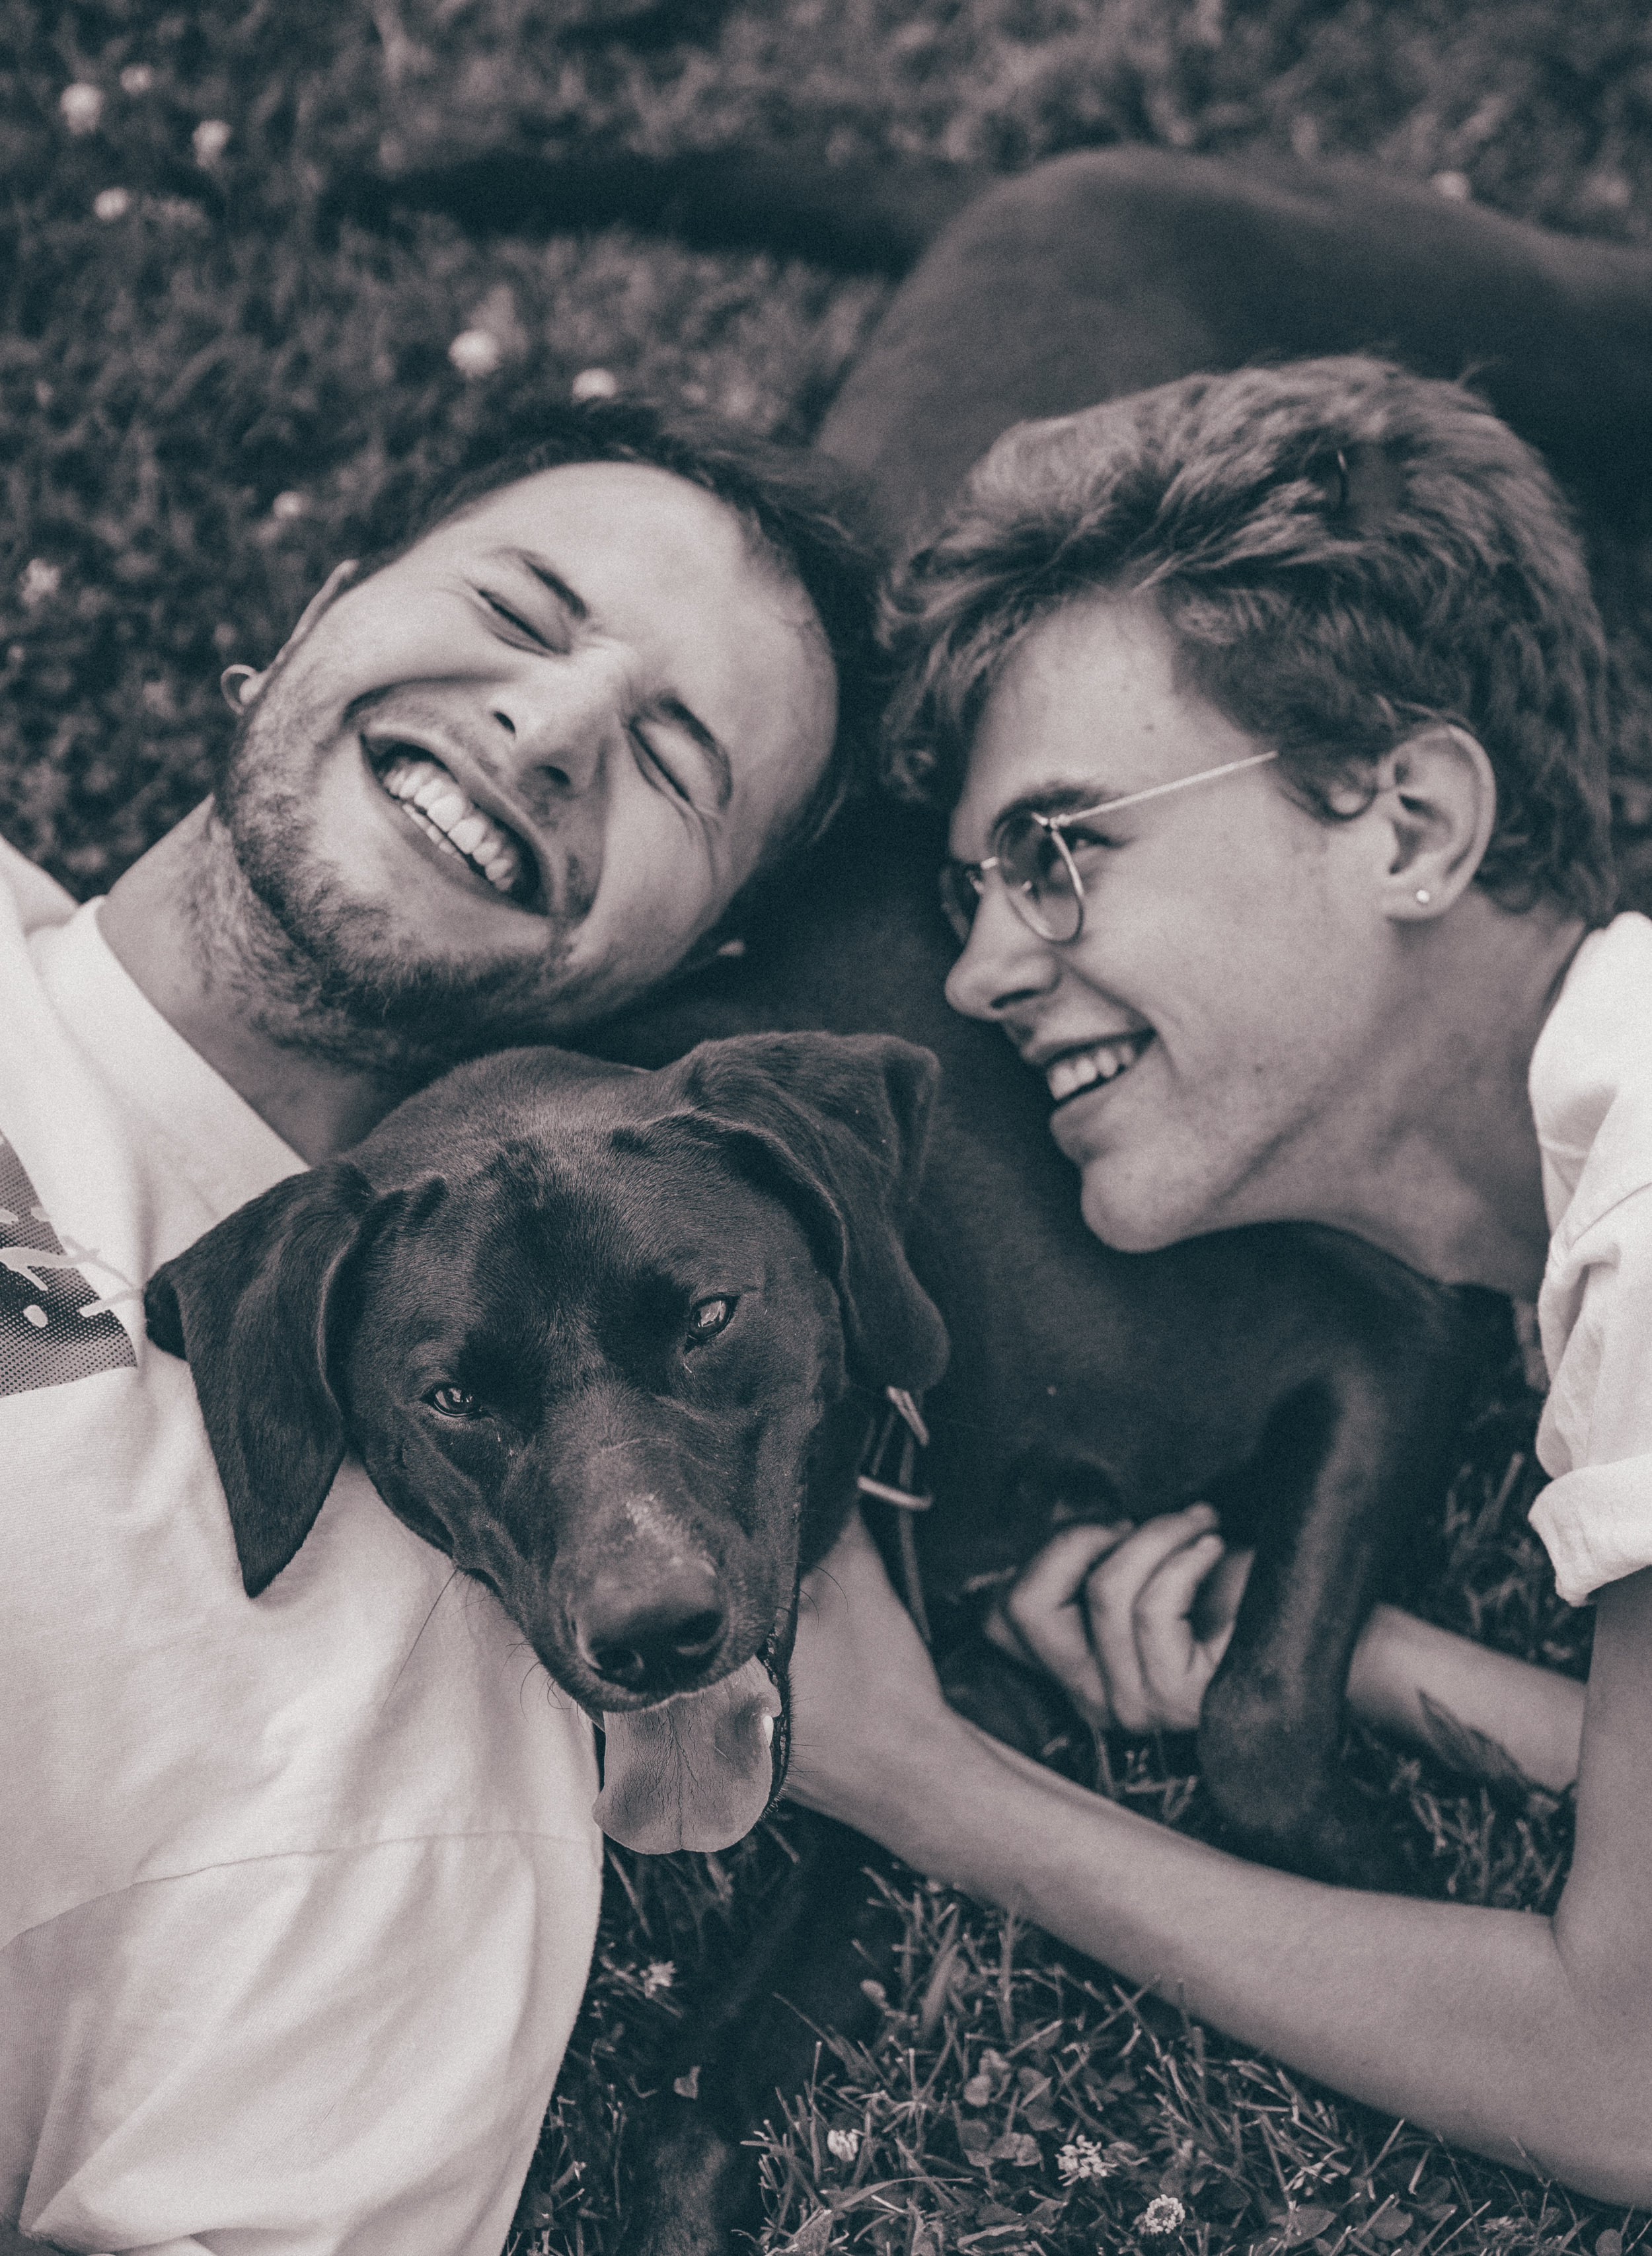 Weddings / Lifestyle - - hourly rate for shooting + flat fee per image file- optional for flat fee, contact for infoThis photo is of Brennan Hepler, Tyler Maez, and their wonderful pup Charlie.